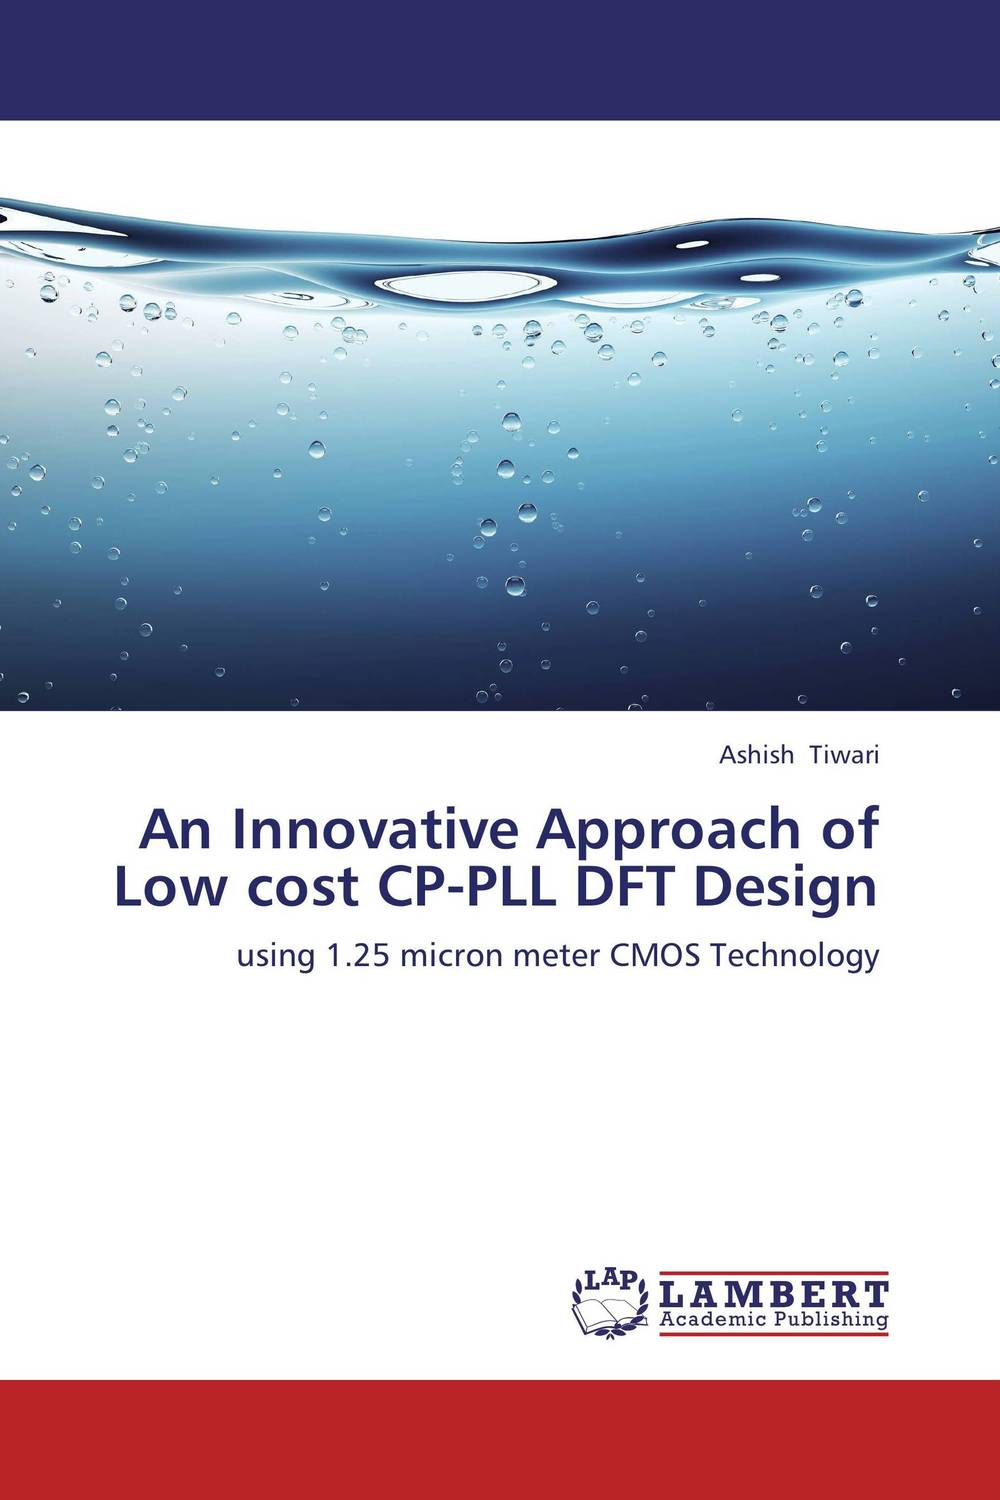 An Innovative Approach of Low cost CP-PLL DFT Design